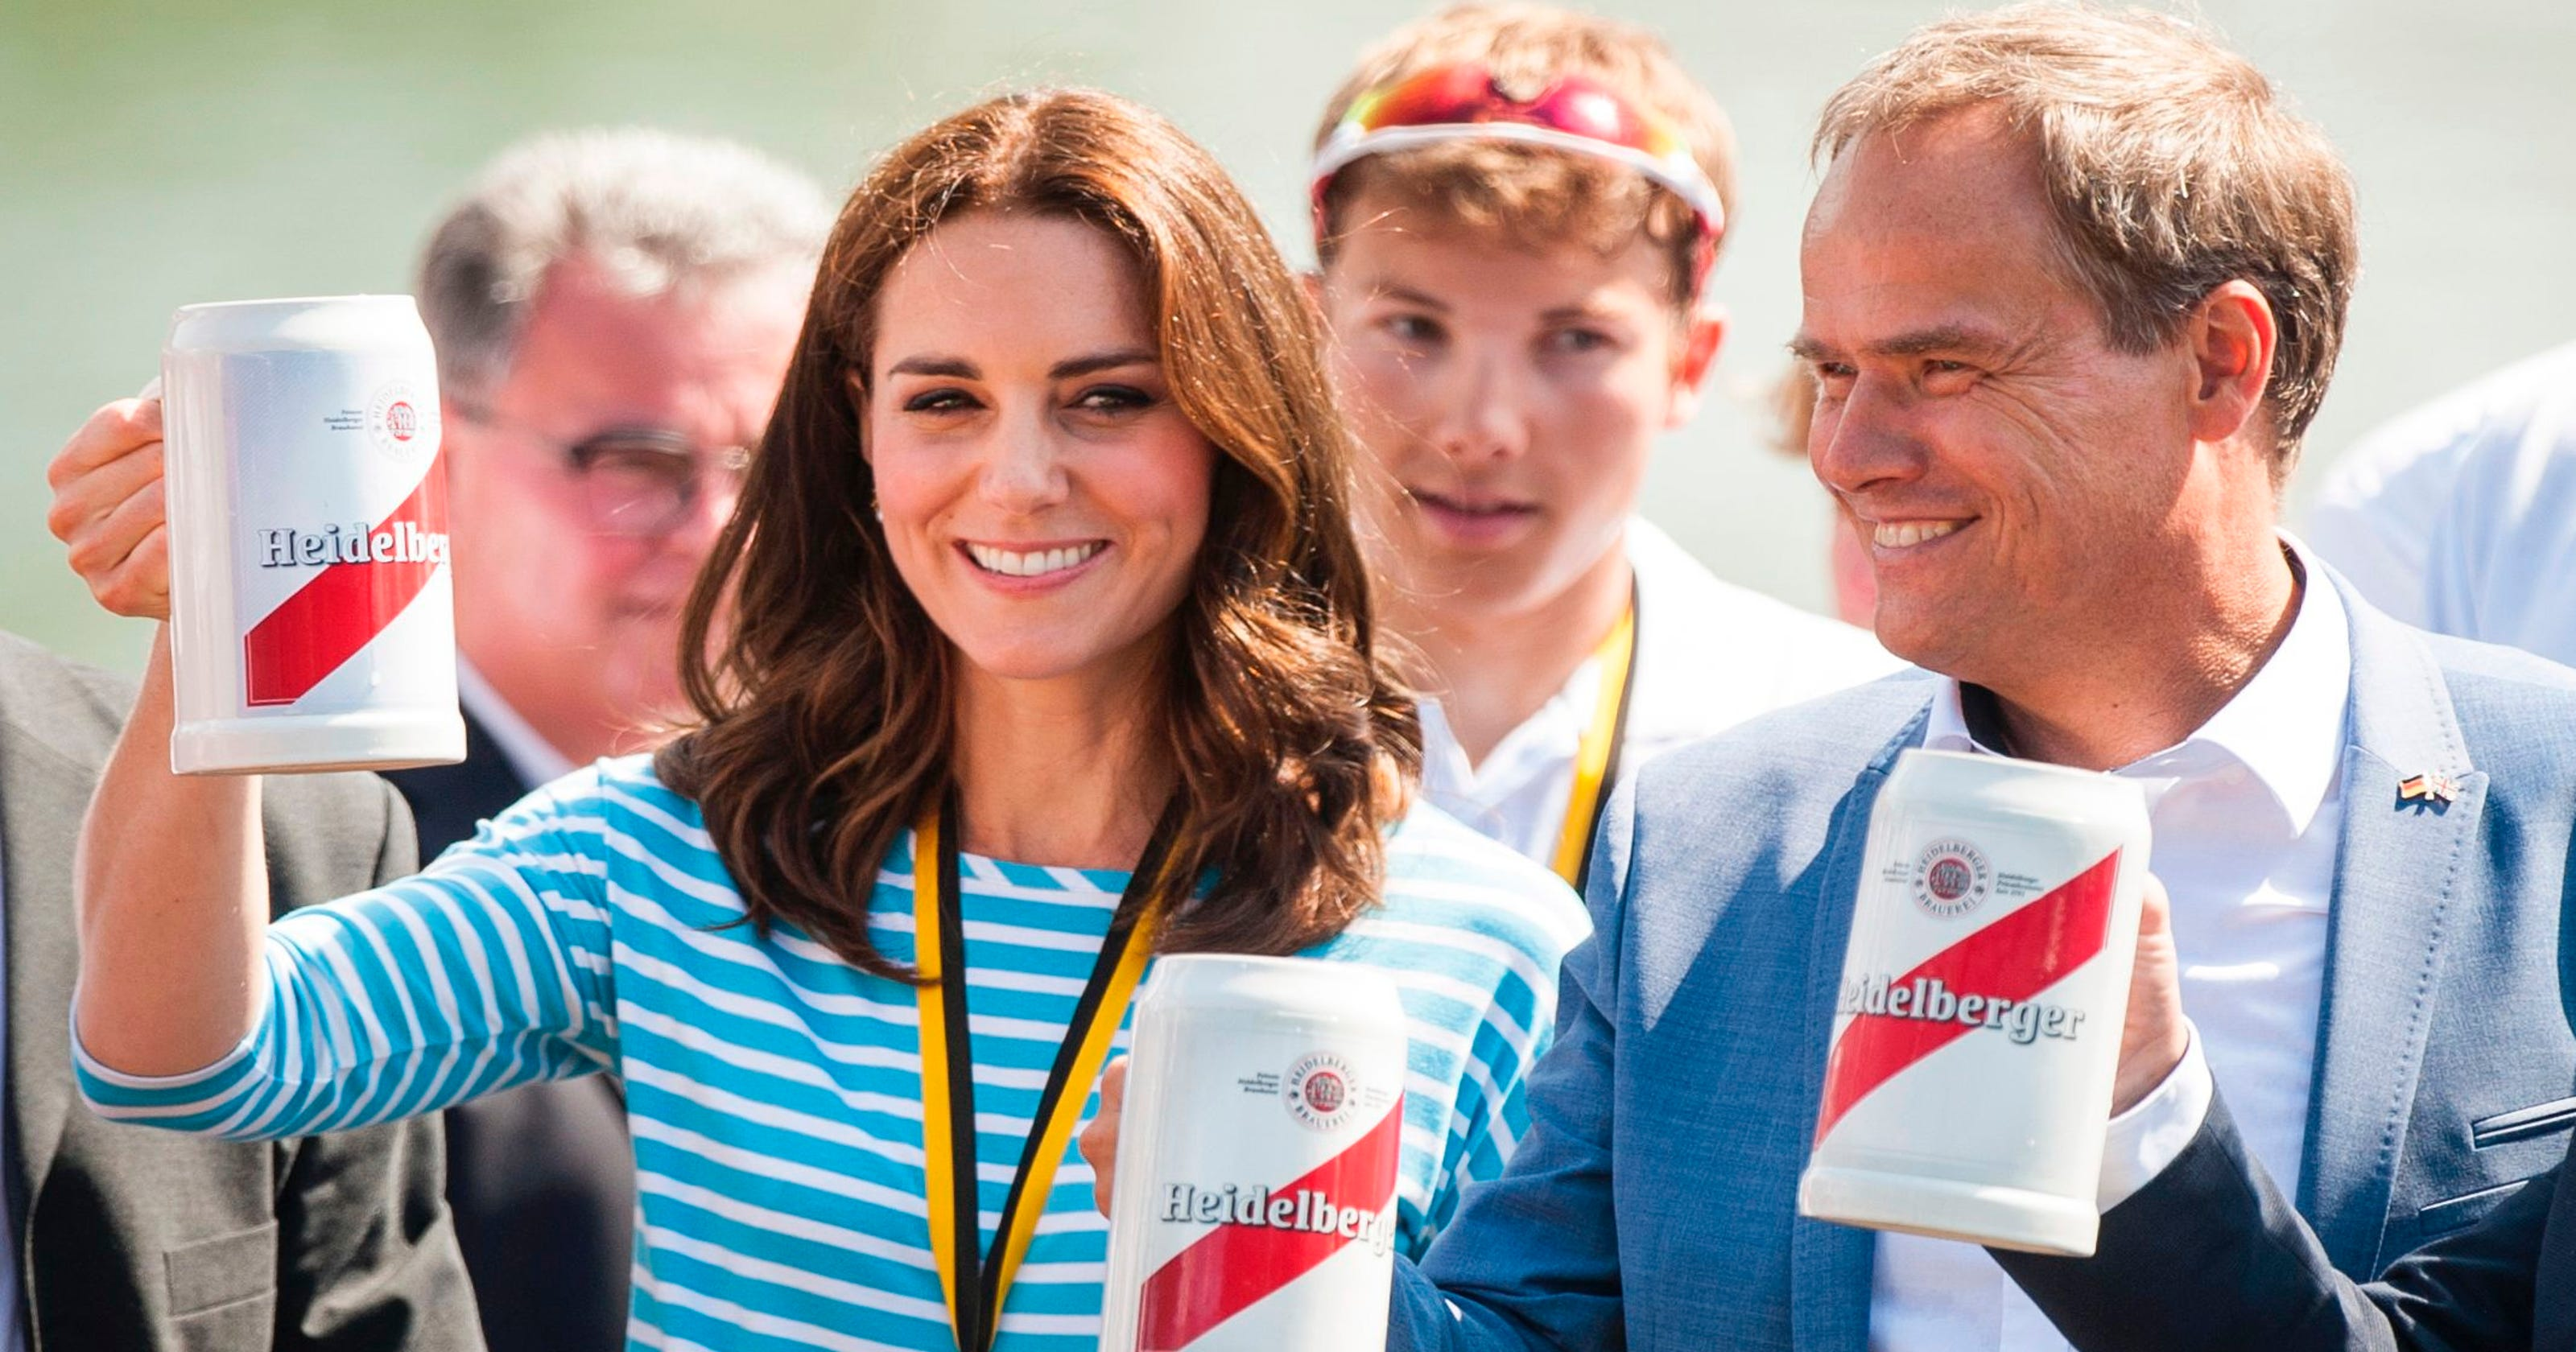 Will And Kate In Heidelberg Beer Pretzels And A Rowing Rivalry